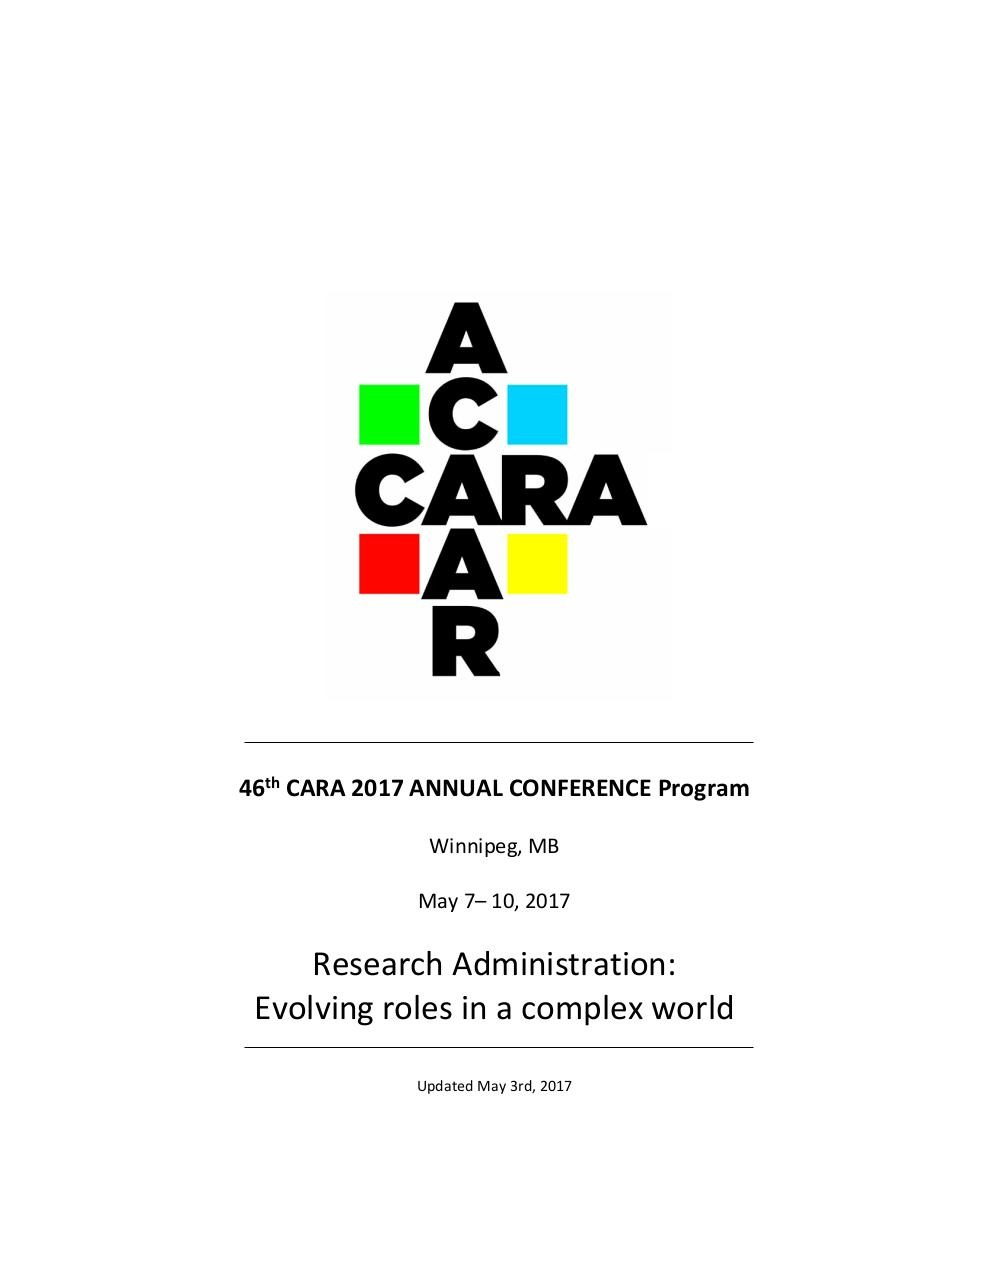 46th CARA 2017 ANNUAL CONFERENCE Program 3May17 (JL).pdf - page 1/36